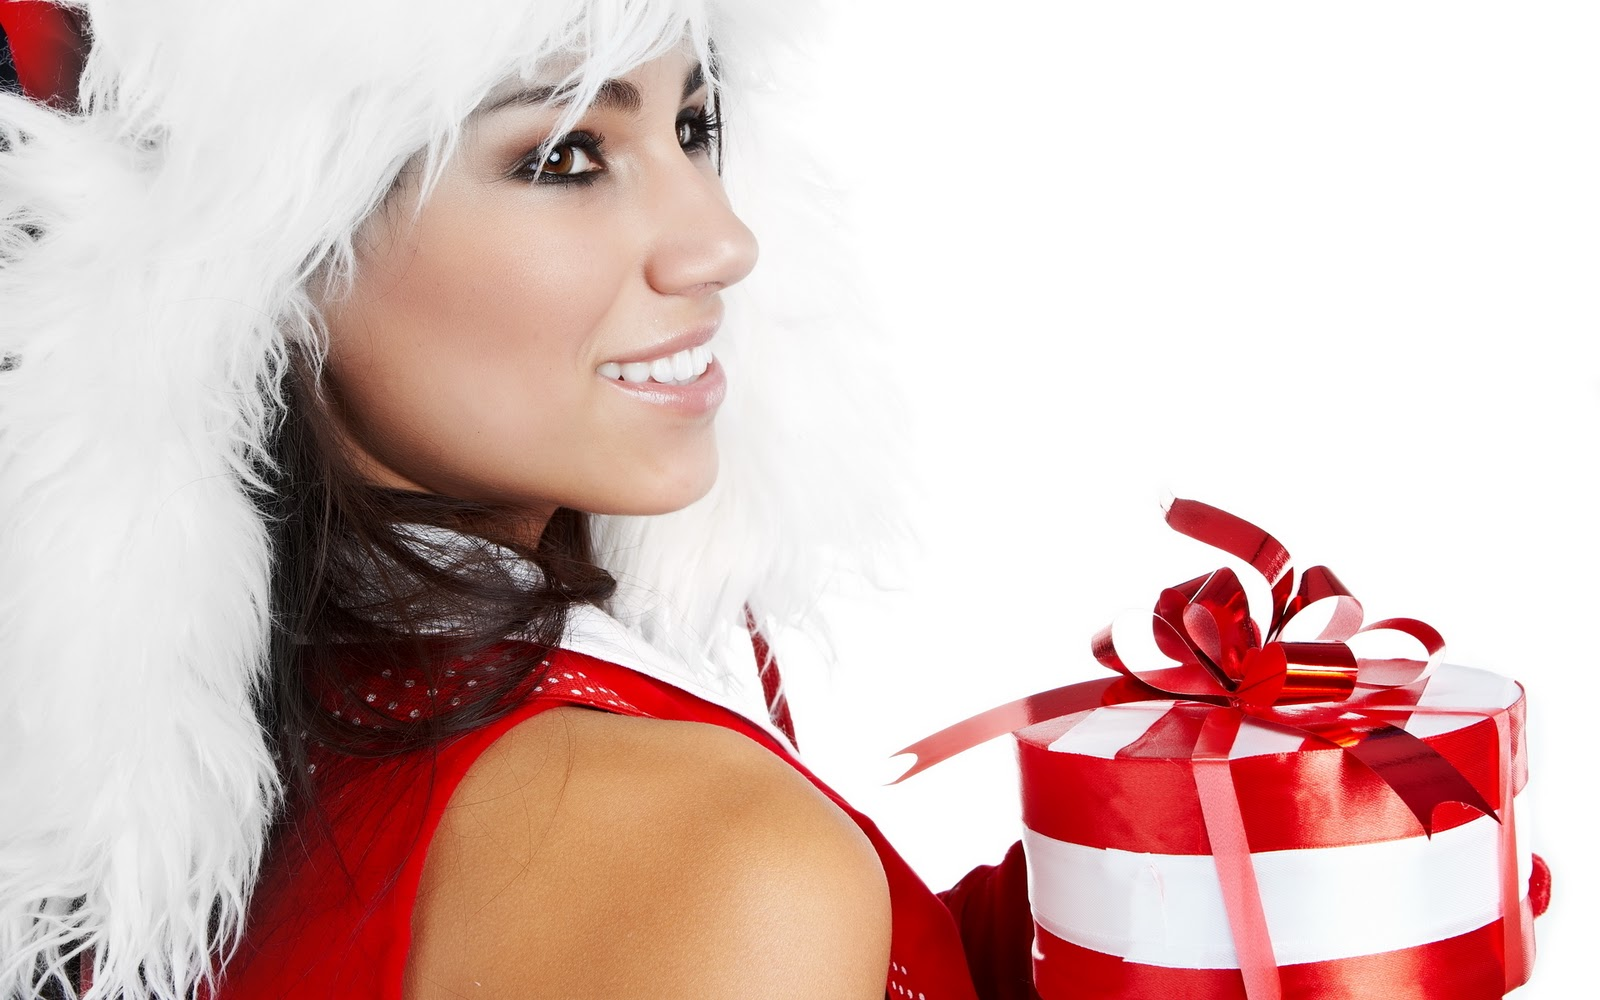 1000+ images about Santa Girls Wallpaper on Pinterest | Sexy